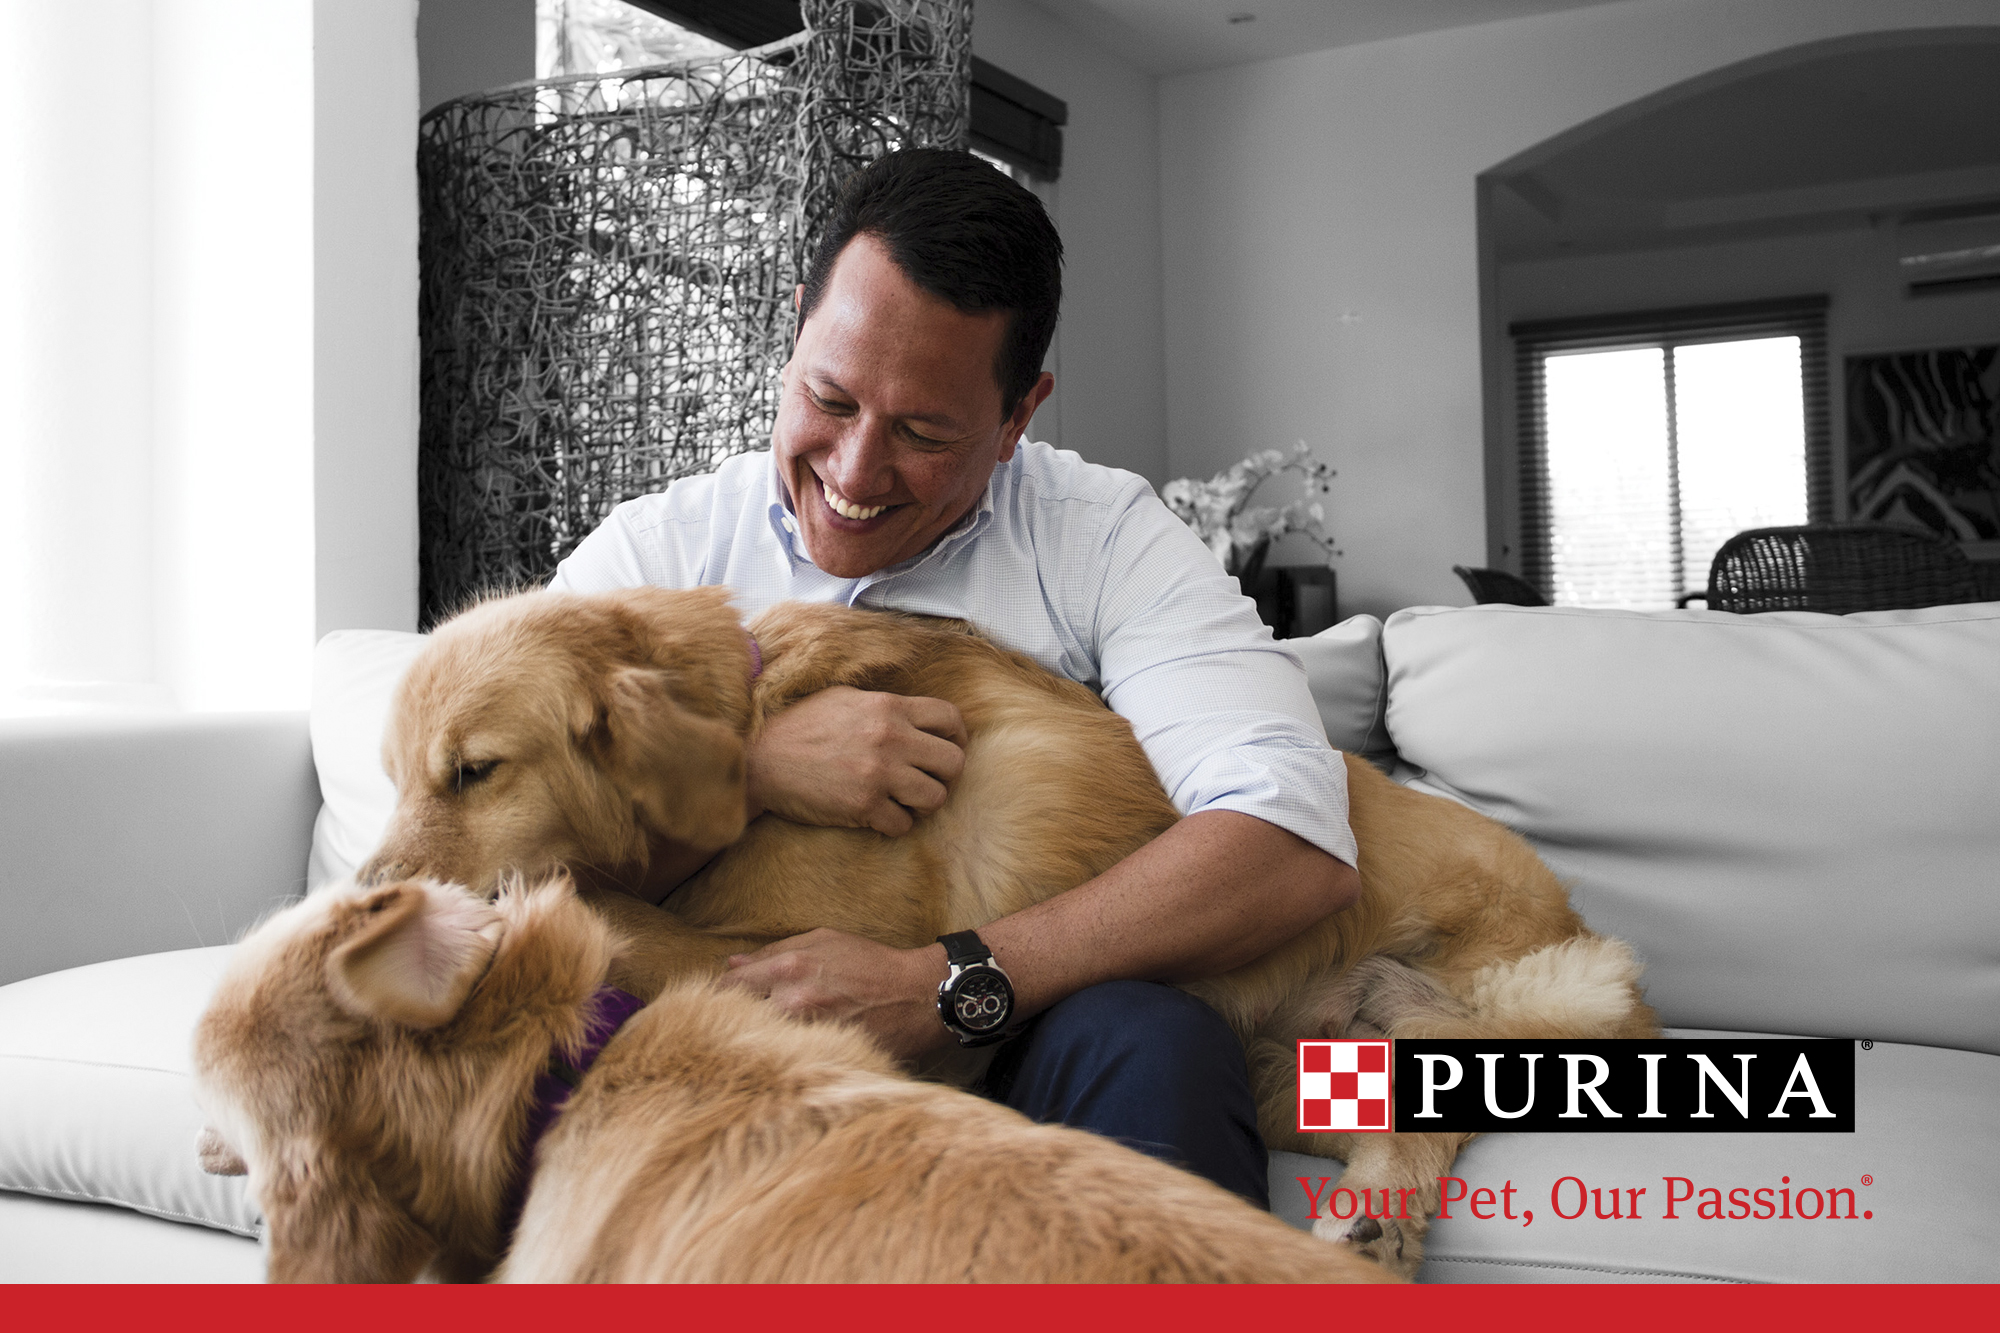 Purina Your Pet Our Passion